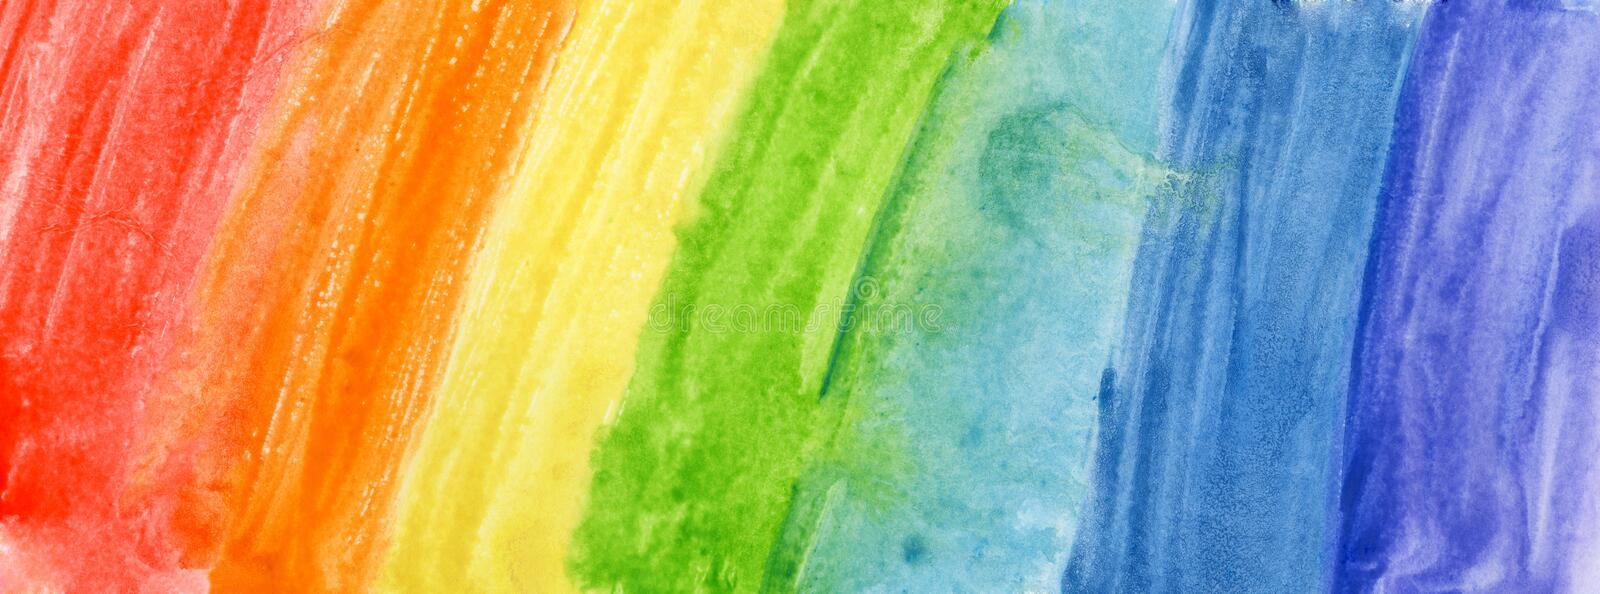 Download Watercolor Background Stock Images - Image: 19536174